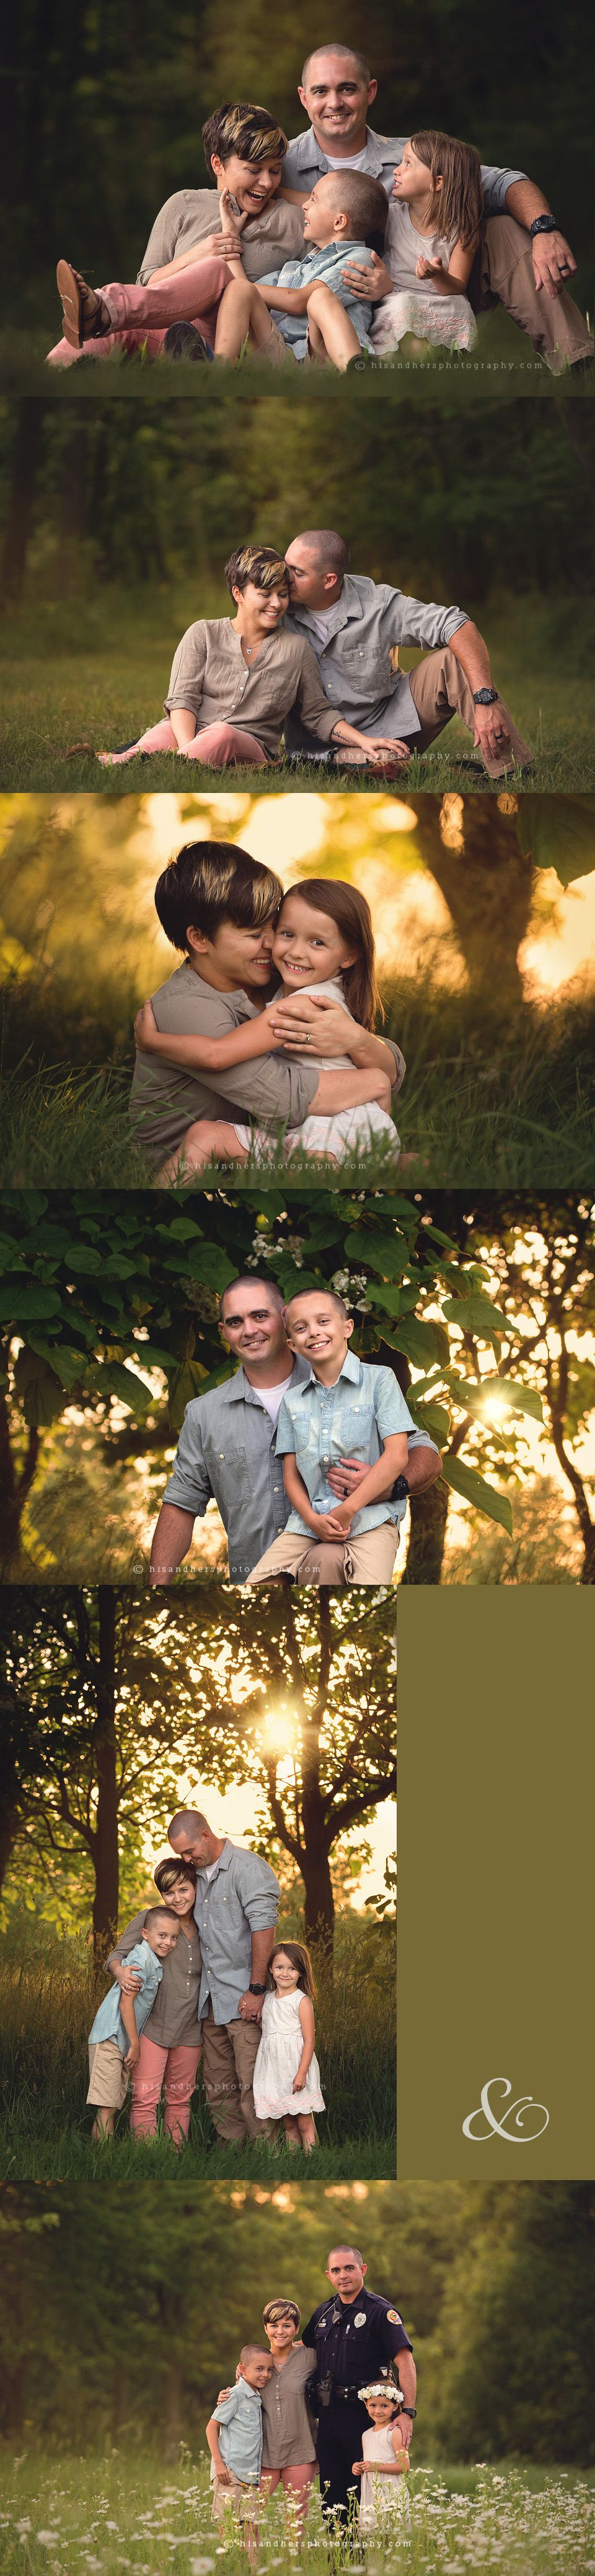 des moines iowa child sibling family photographer family pictures portraits brother sister photo session